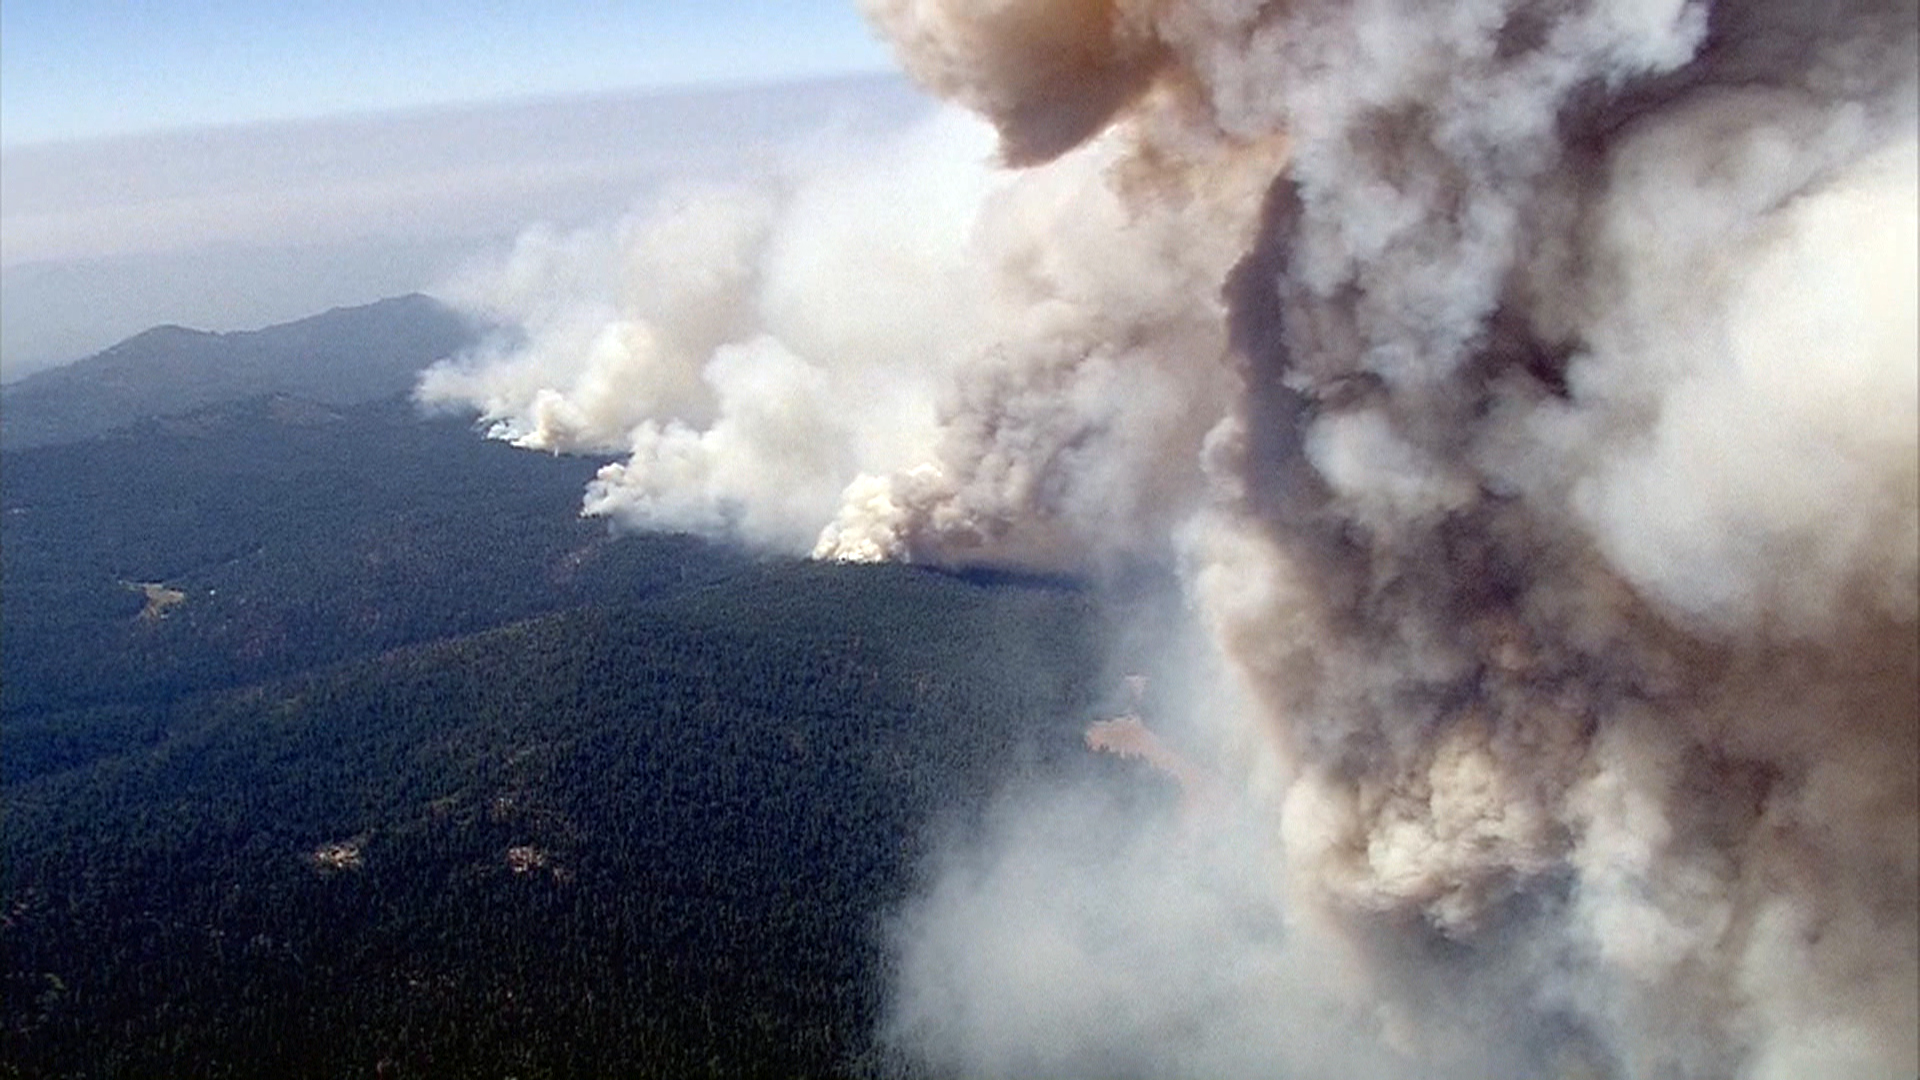 Hundreds of california cattle feared hurt dead as massive rim fire hundreds of california cattle feared hurt dead as massive rim fire scorches region fandeluxe Choice Image